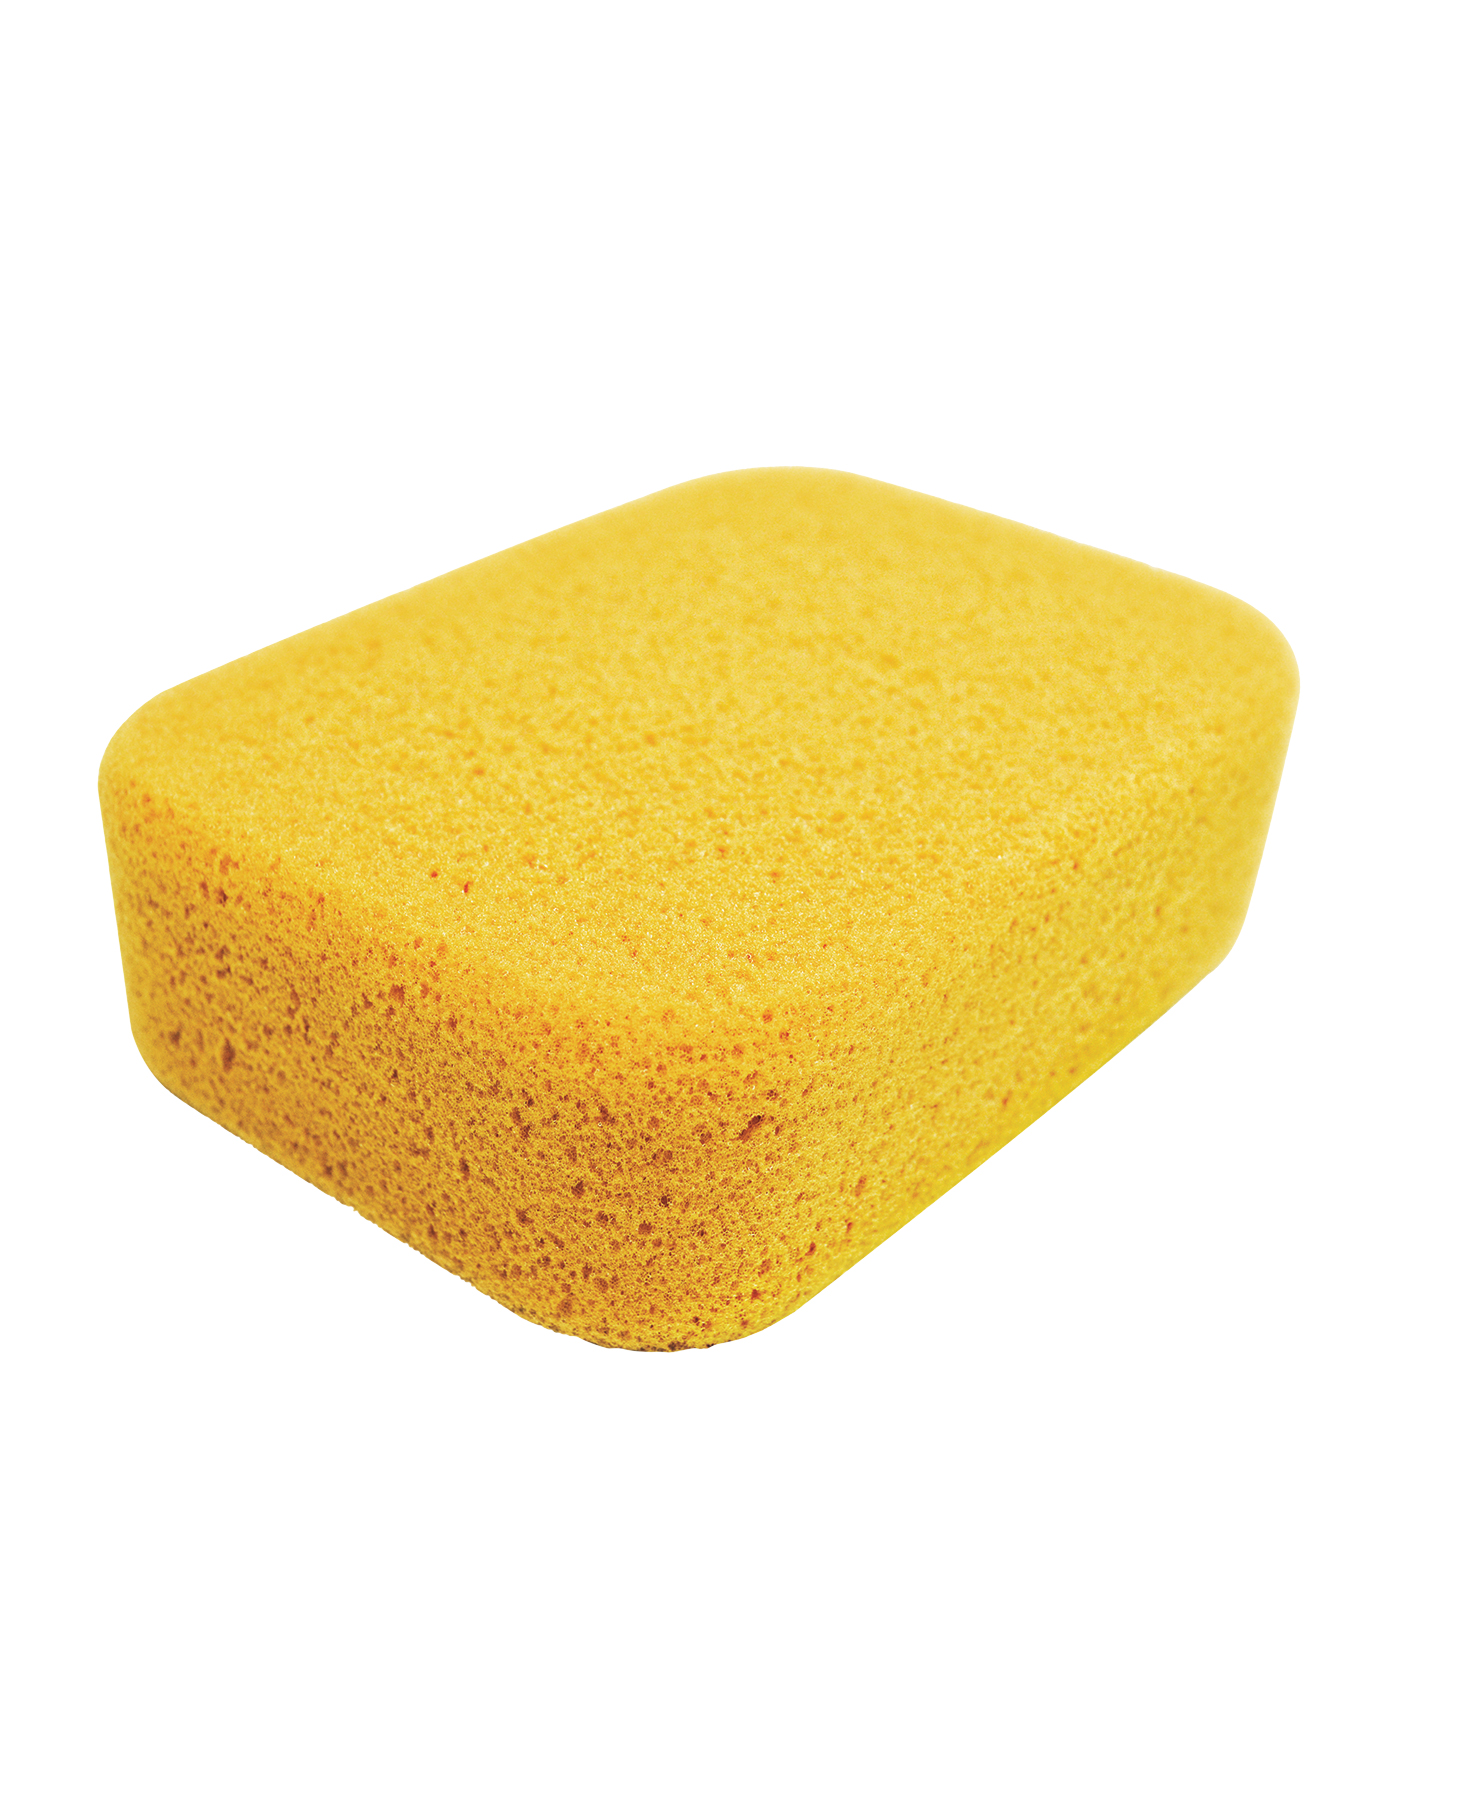 Virtex XL Grout Sponge